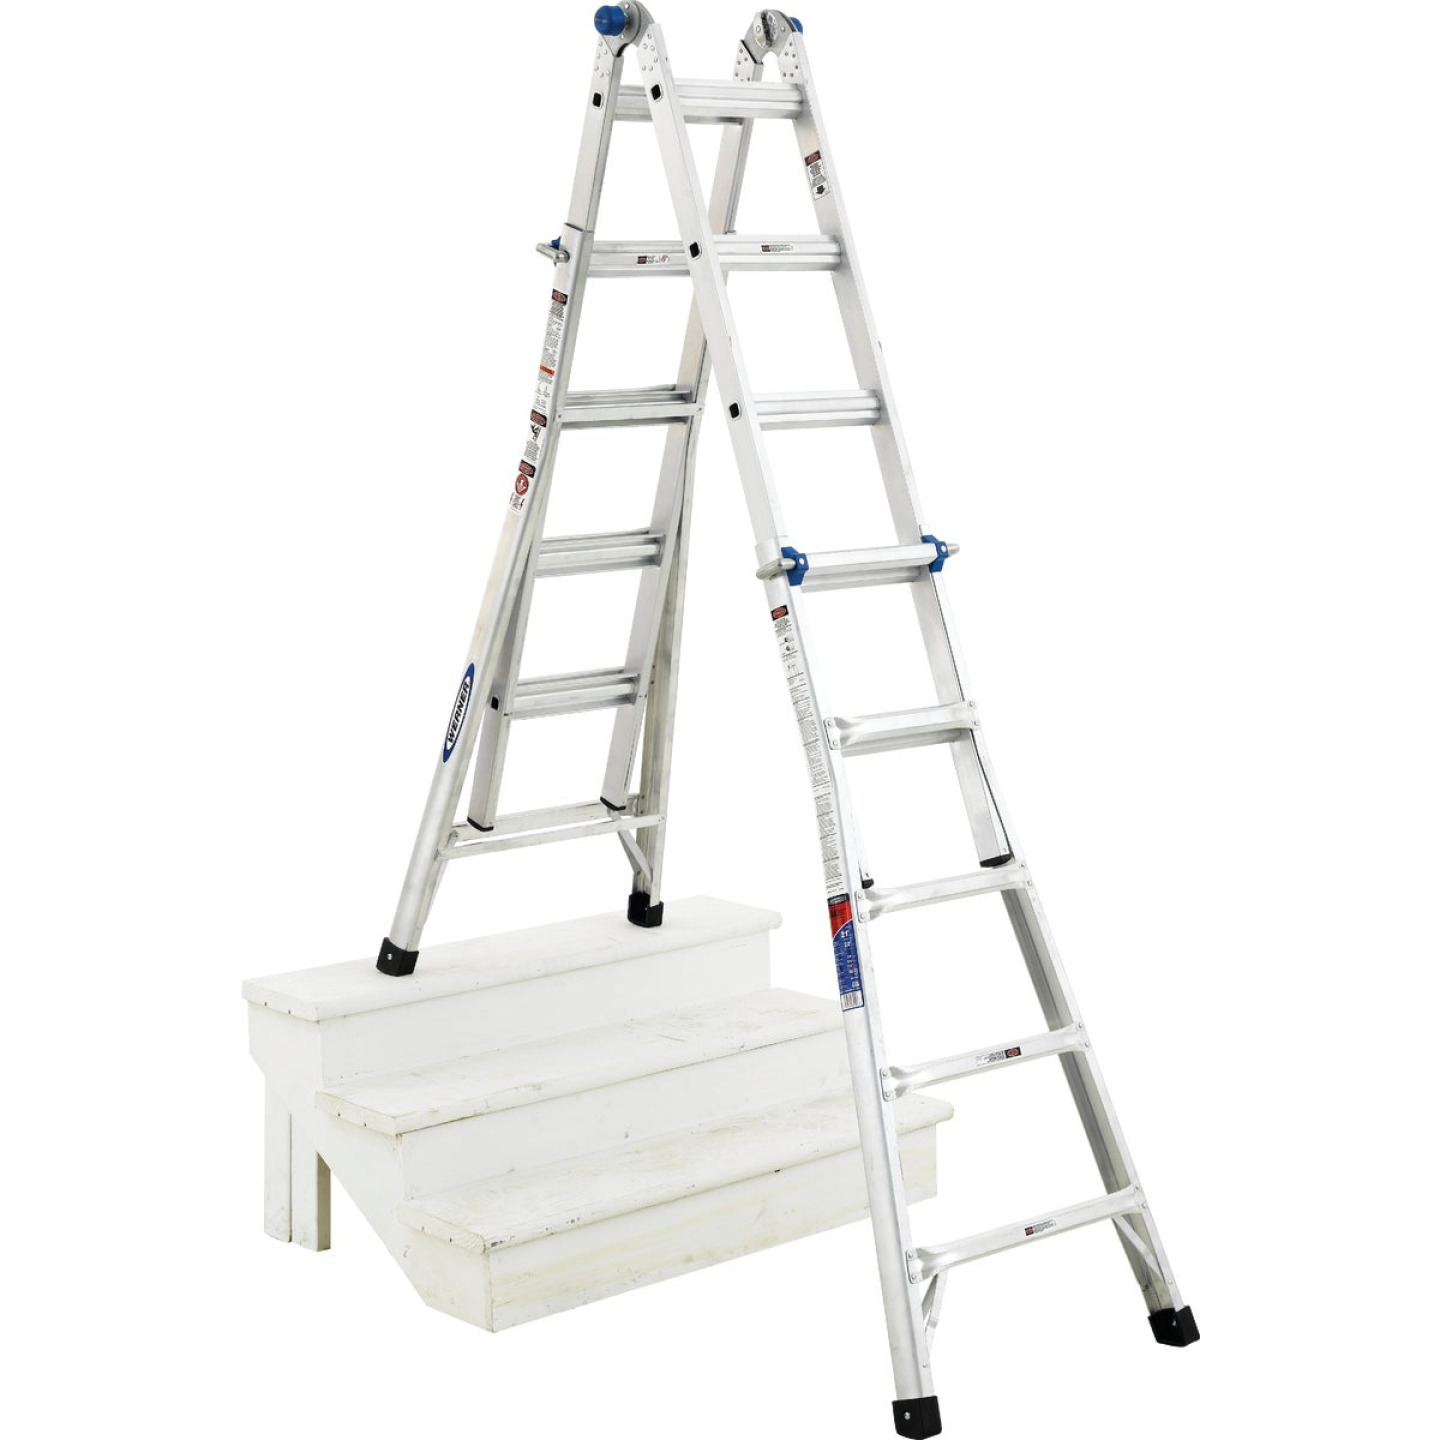 Werner 22 Ft. Aluminum Multi-Position Telescoping Ladder with 300 Lb. Load Capacity Type IA Ladder Rating Image 7